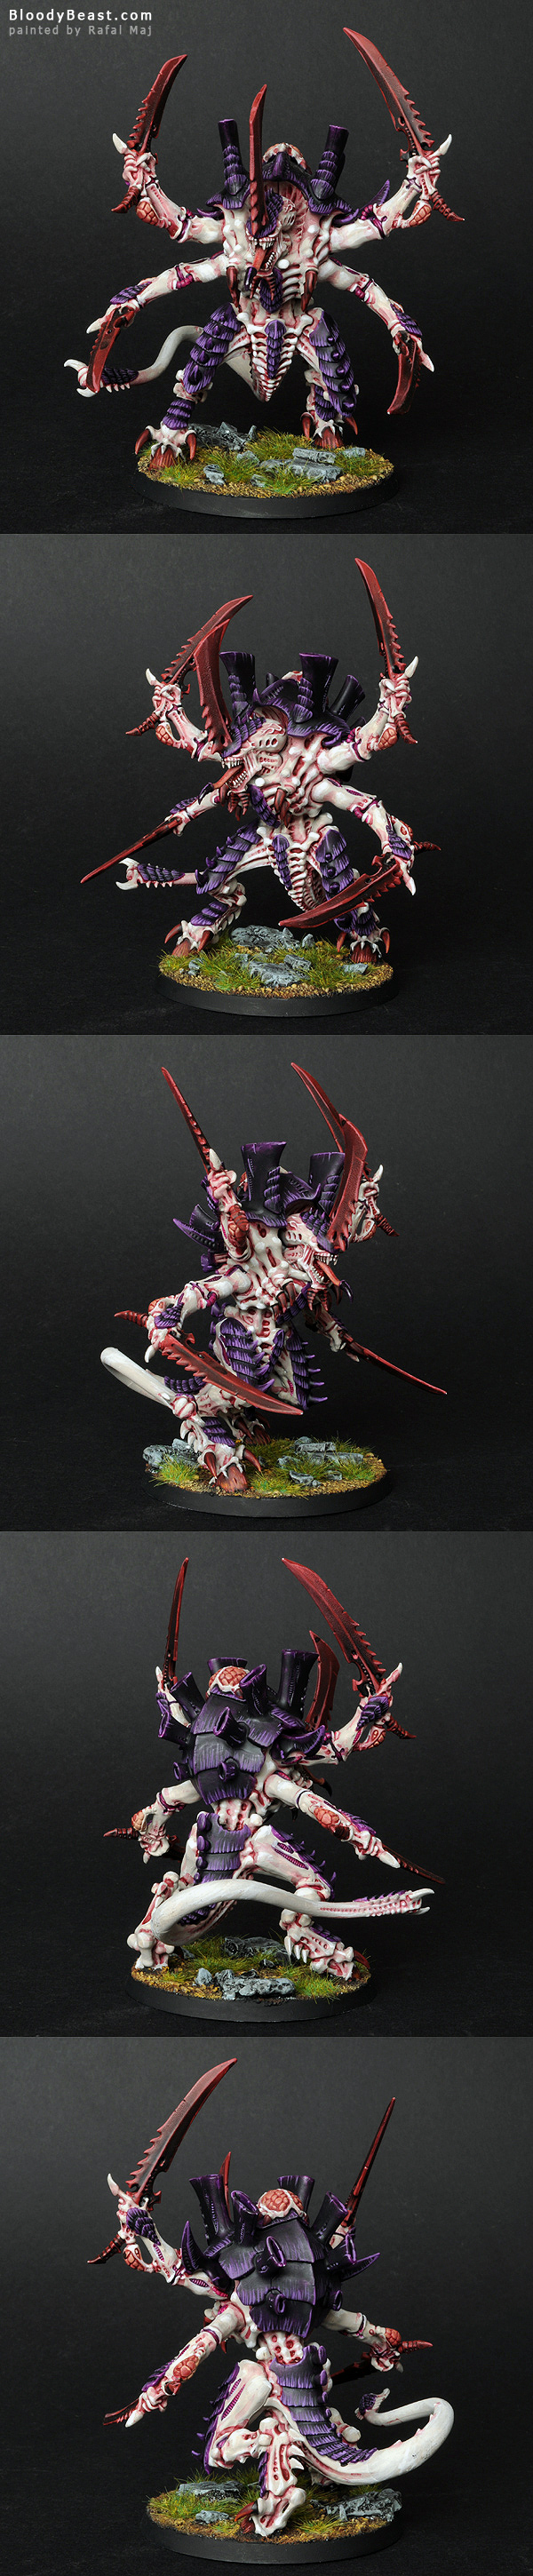 Tyranid Swarmlord painted by Rafal Maj (BloodyBeast.com)